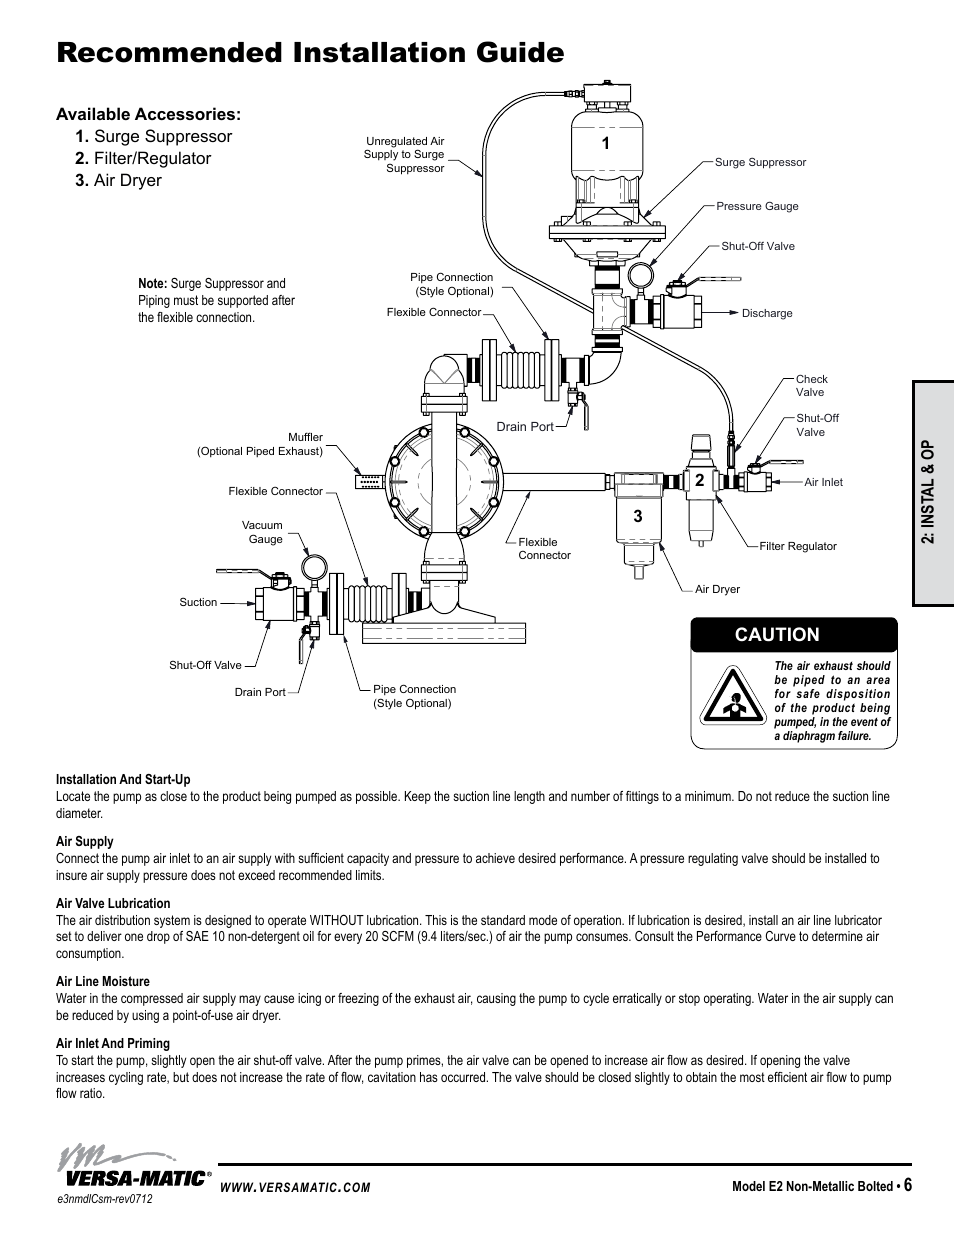 Recommended installation guide, Principle of pump